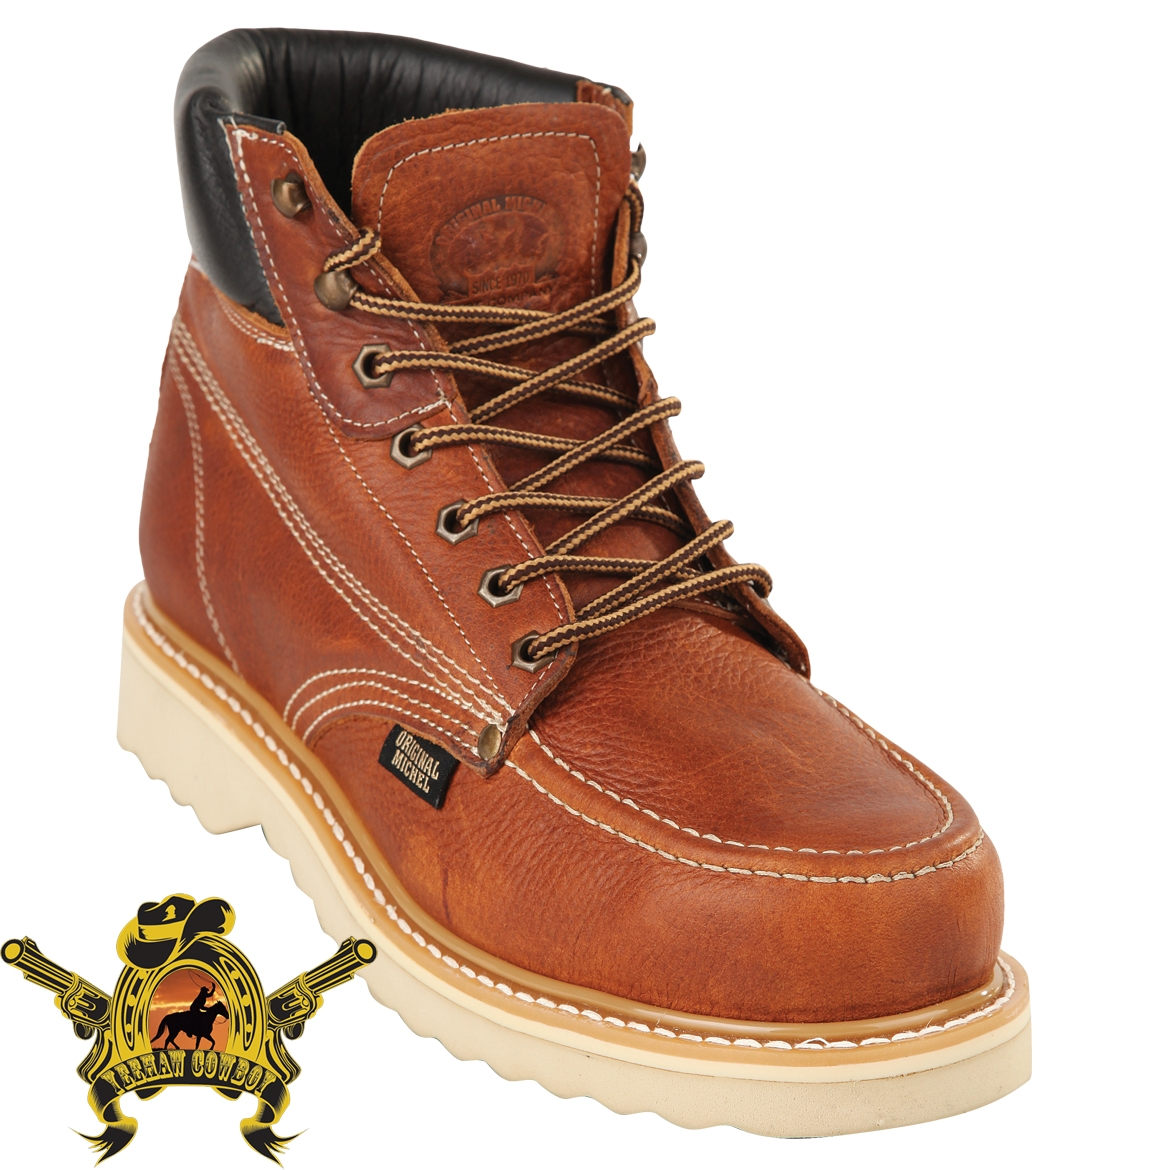 Construction Work Boots Ms7SNYMj